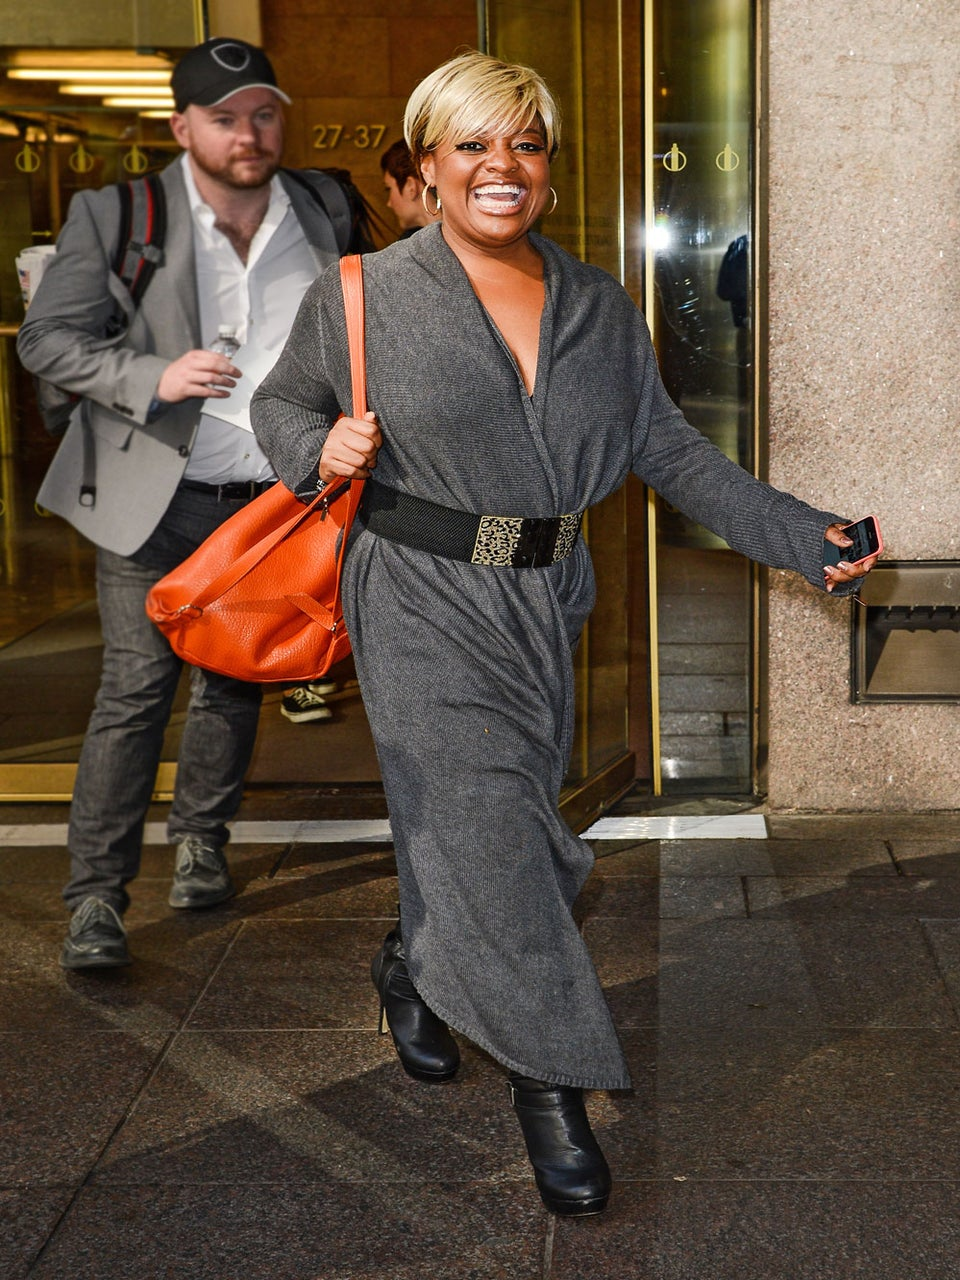 Sherri Shepherd Shares What She Learned From Divorce, Explains Biggest Advice She's Received.